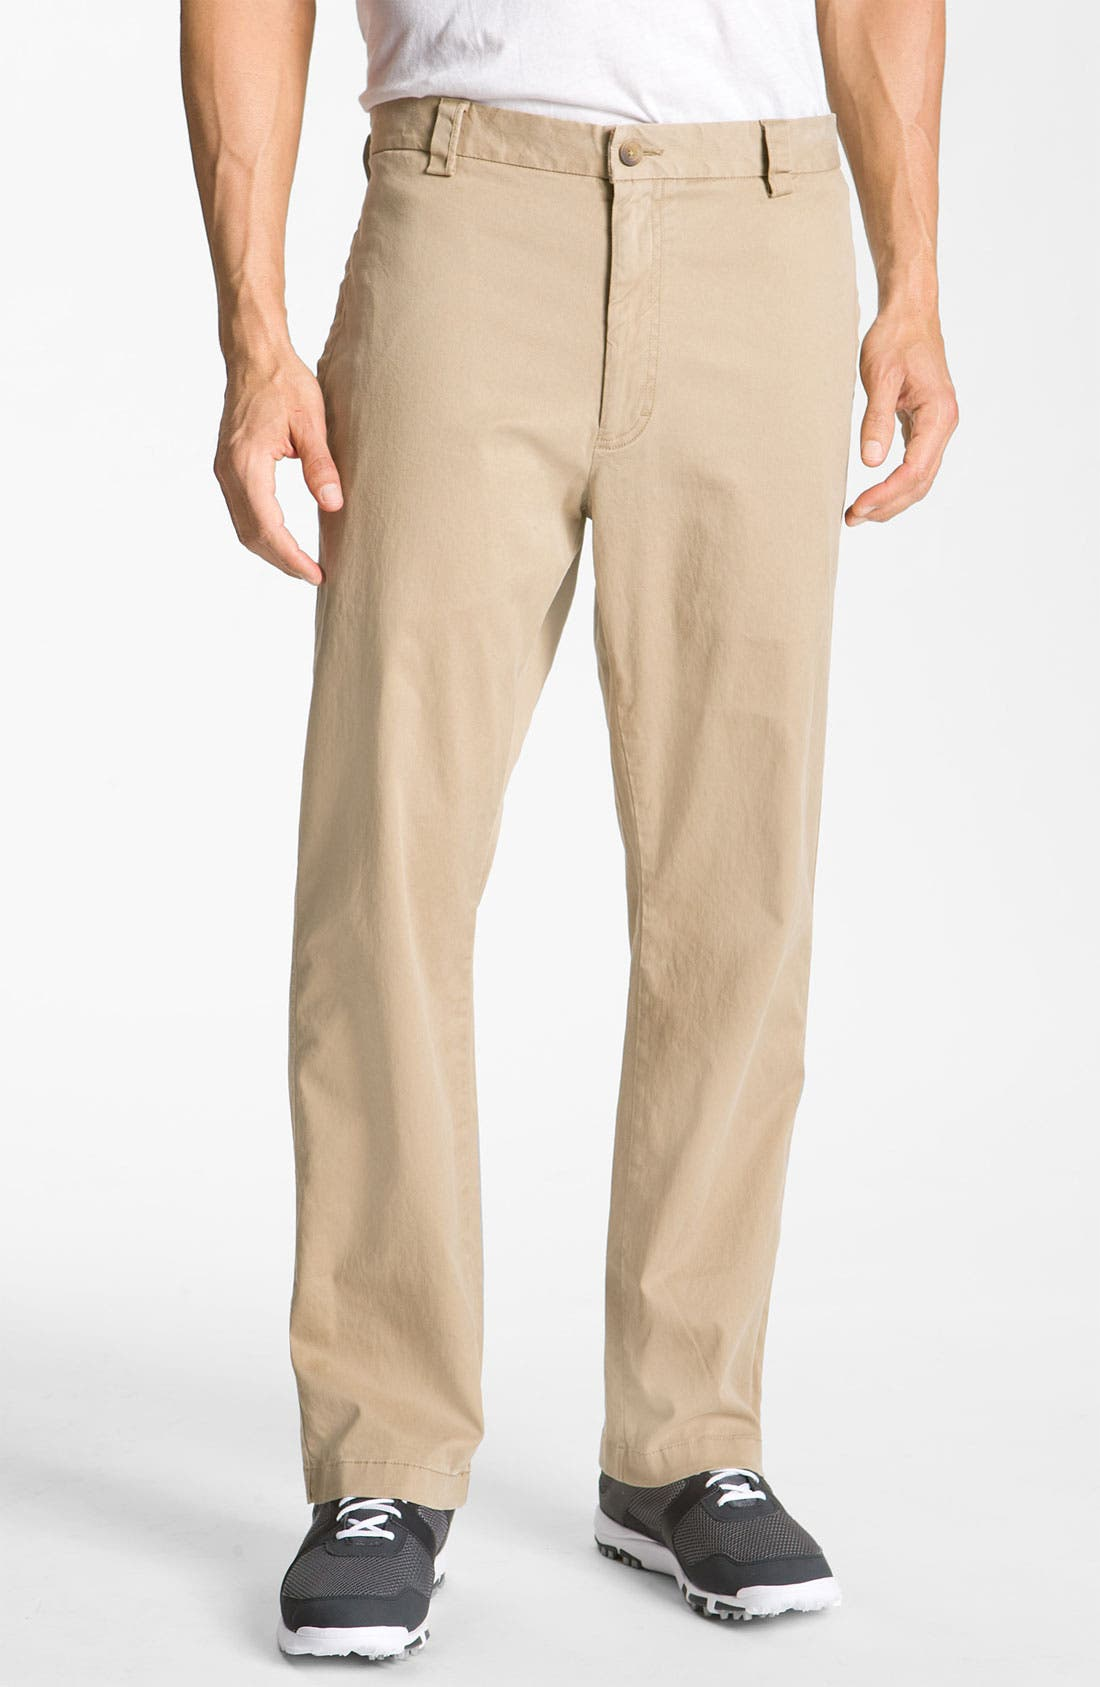 Alternate Image 1 Selected - Cutter & Buck 'Fremont' Chinos